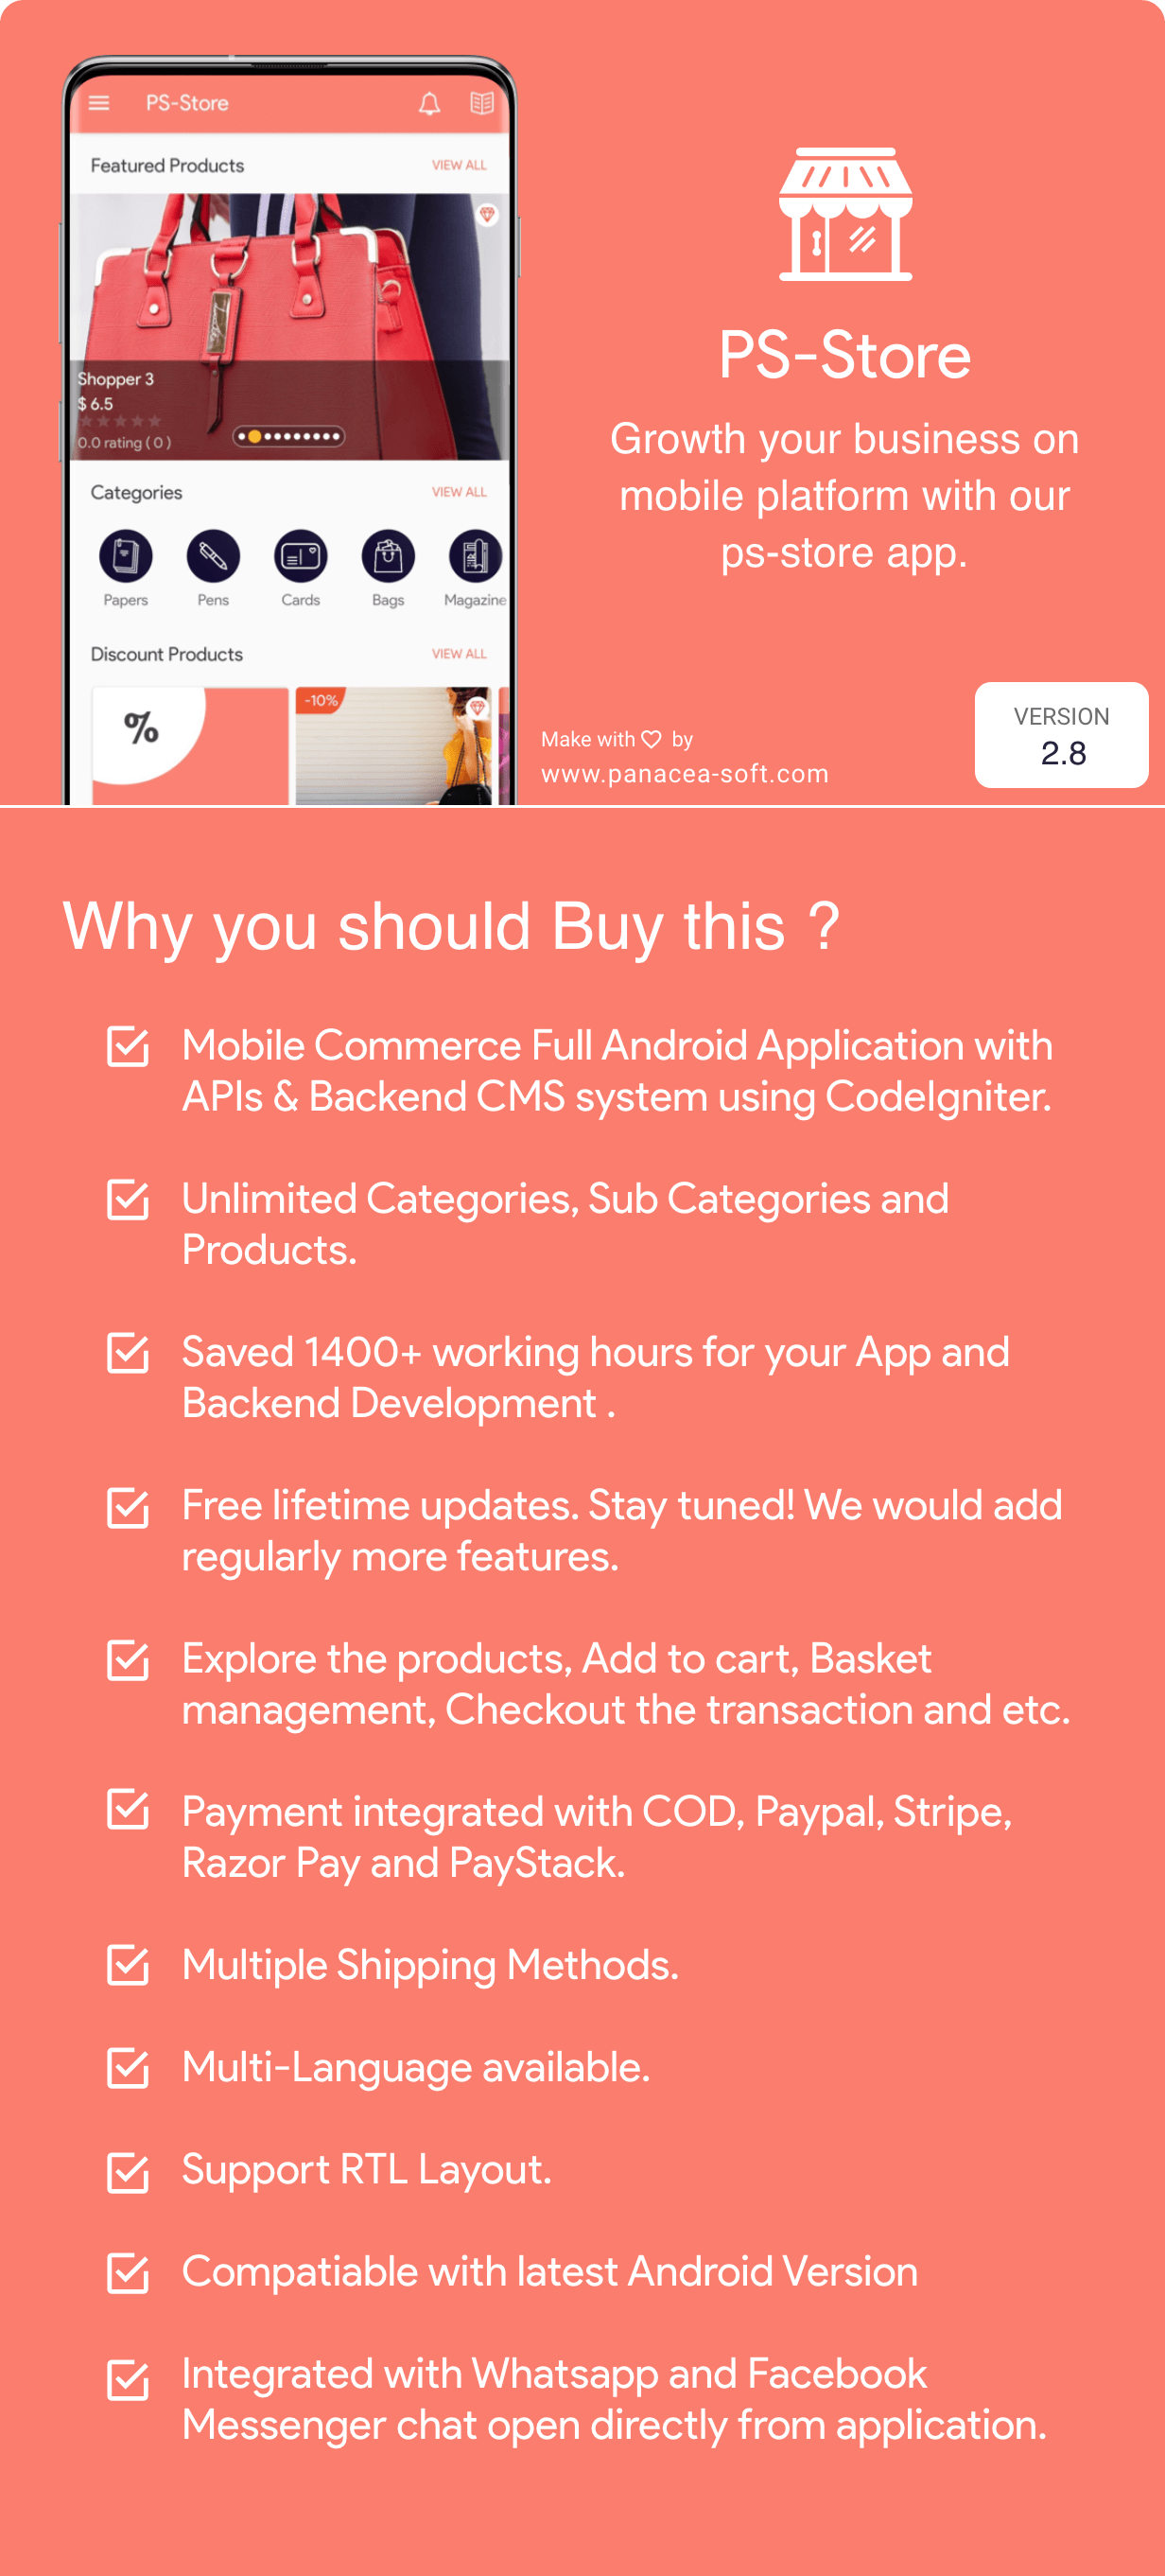 PS Store ( Mobile eCommerce App for Every Business Owner ) 2.7 - 2